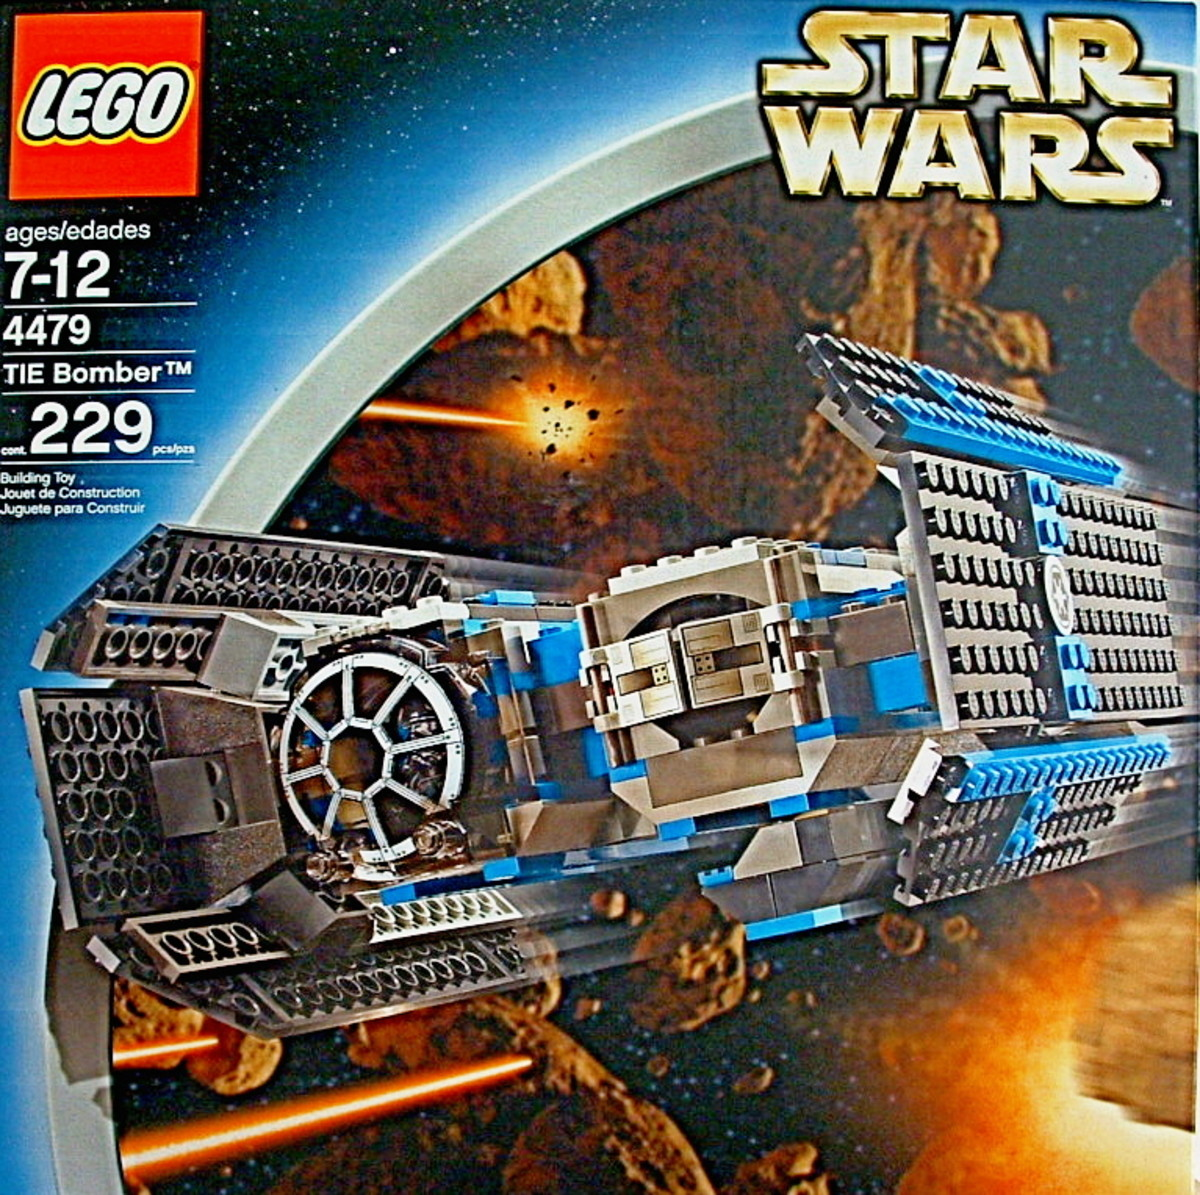 LEGO Star Wars TIE Bomber 4479 Box